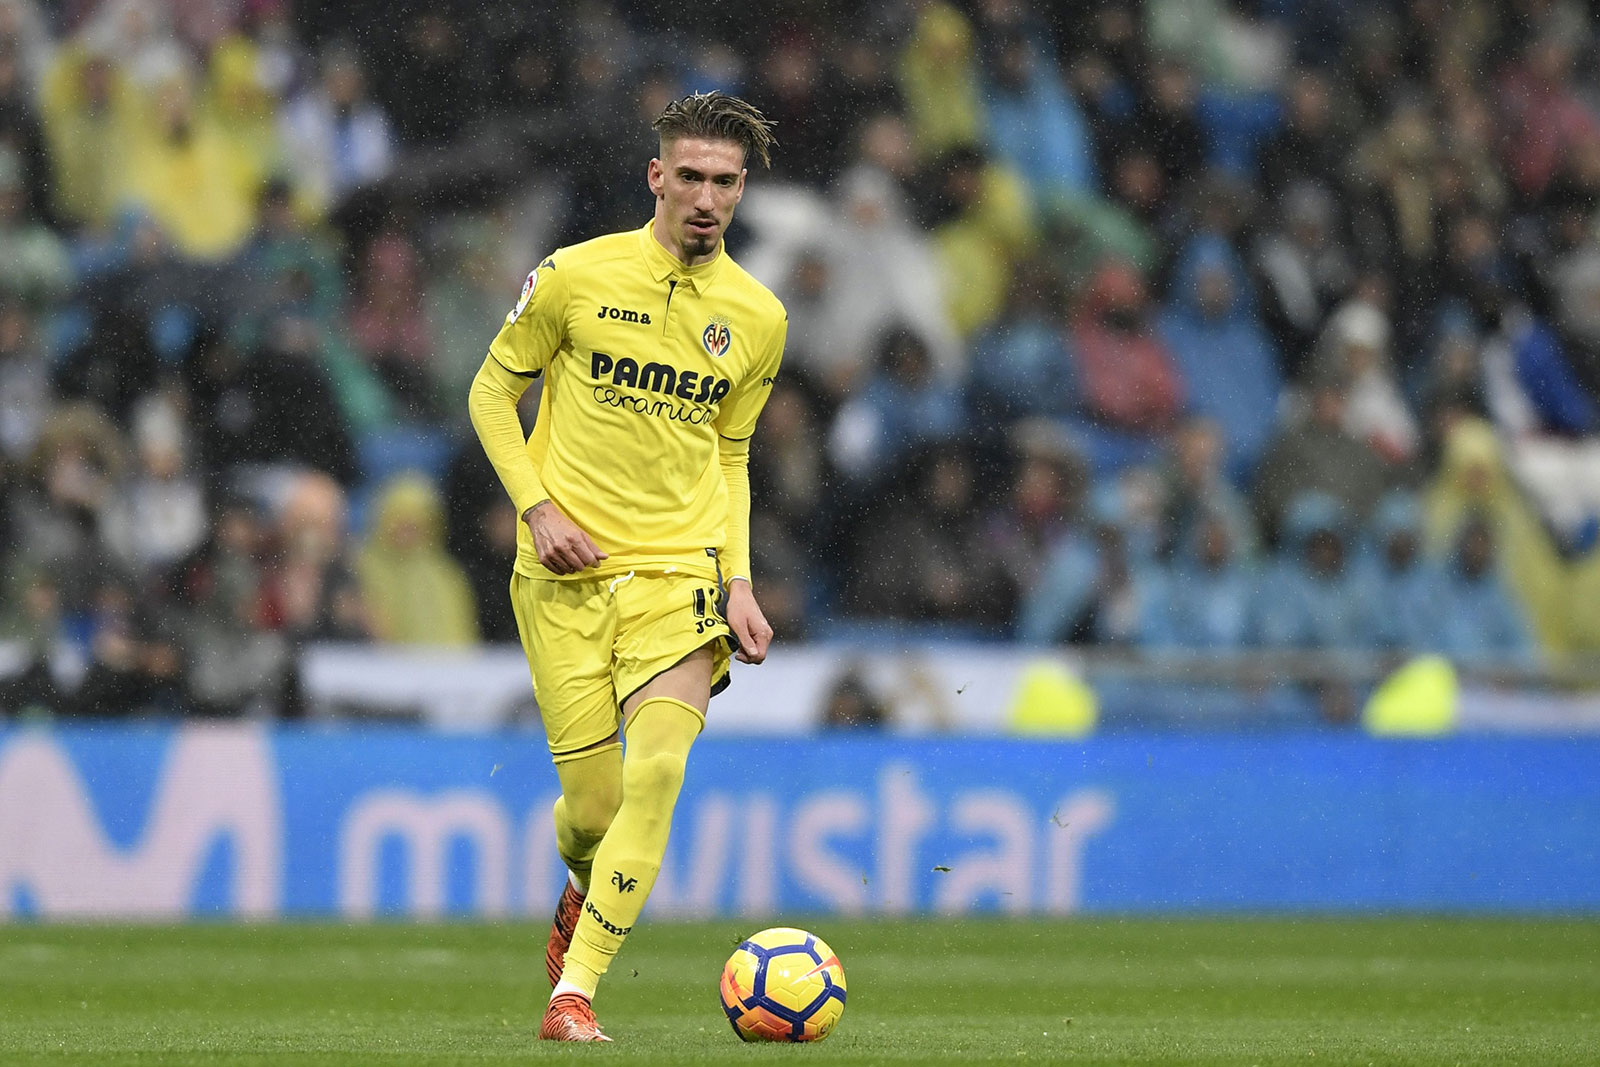 Samu Castillejo during Real Madrid-Villarreal at Estadio Santiago Bernabéu on January 13, 2018. (GABRIEL BOUYS/AFP/Getty Images)